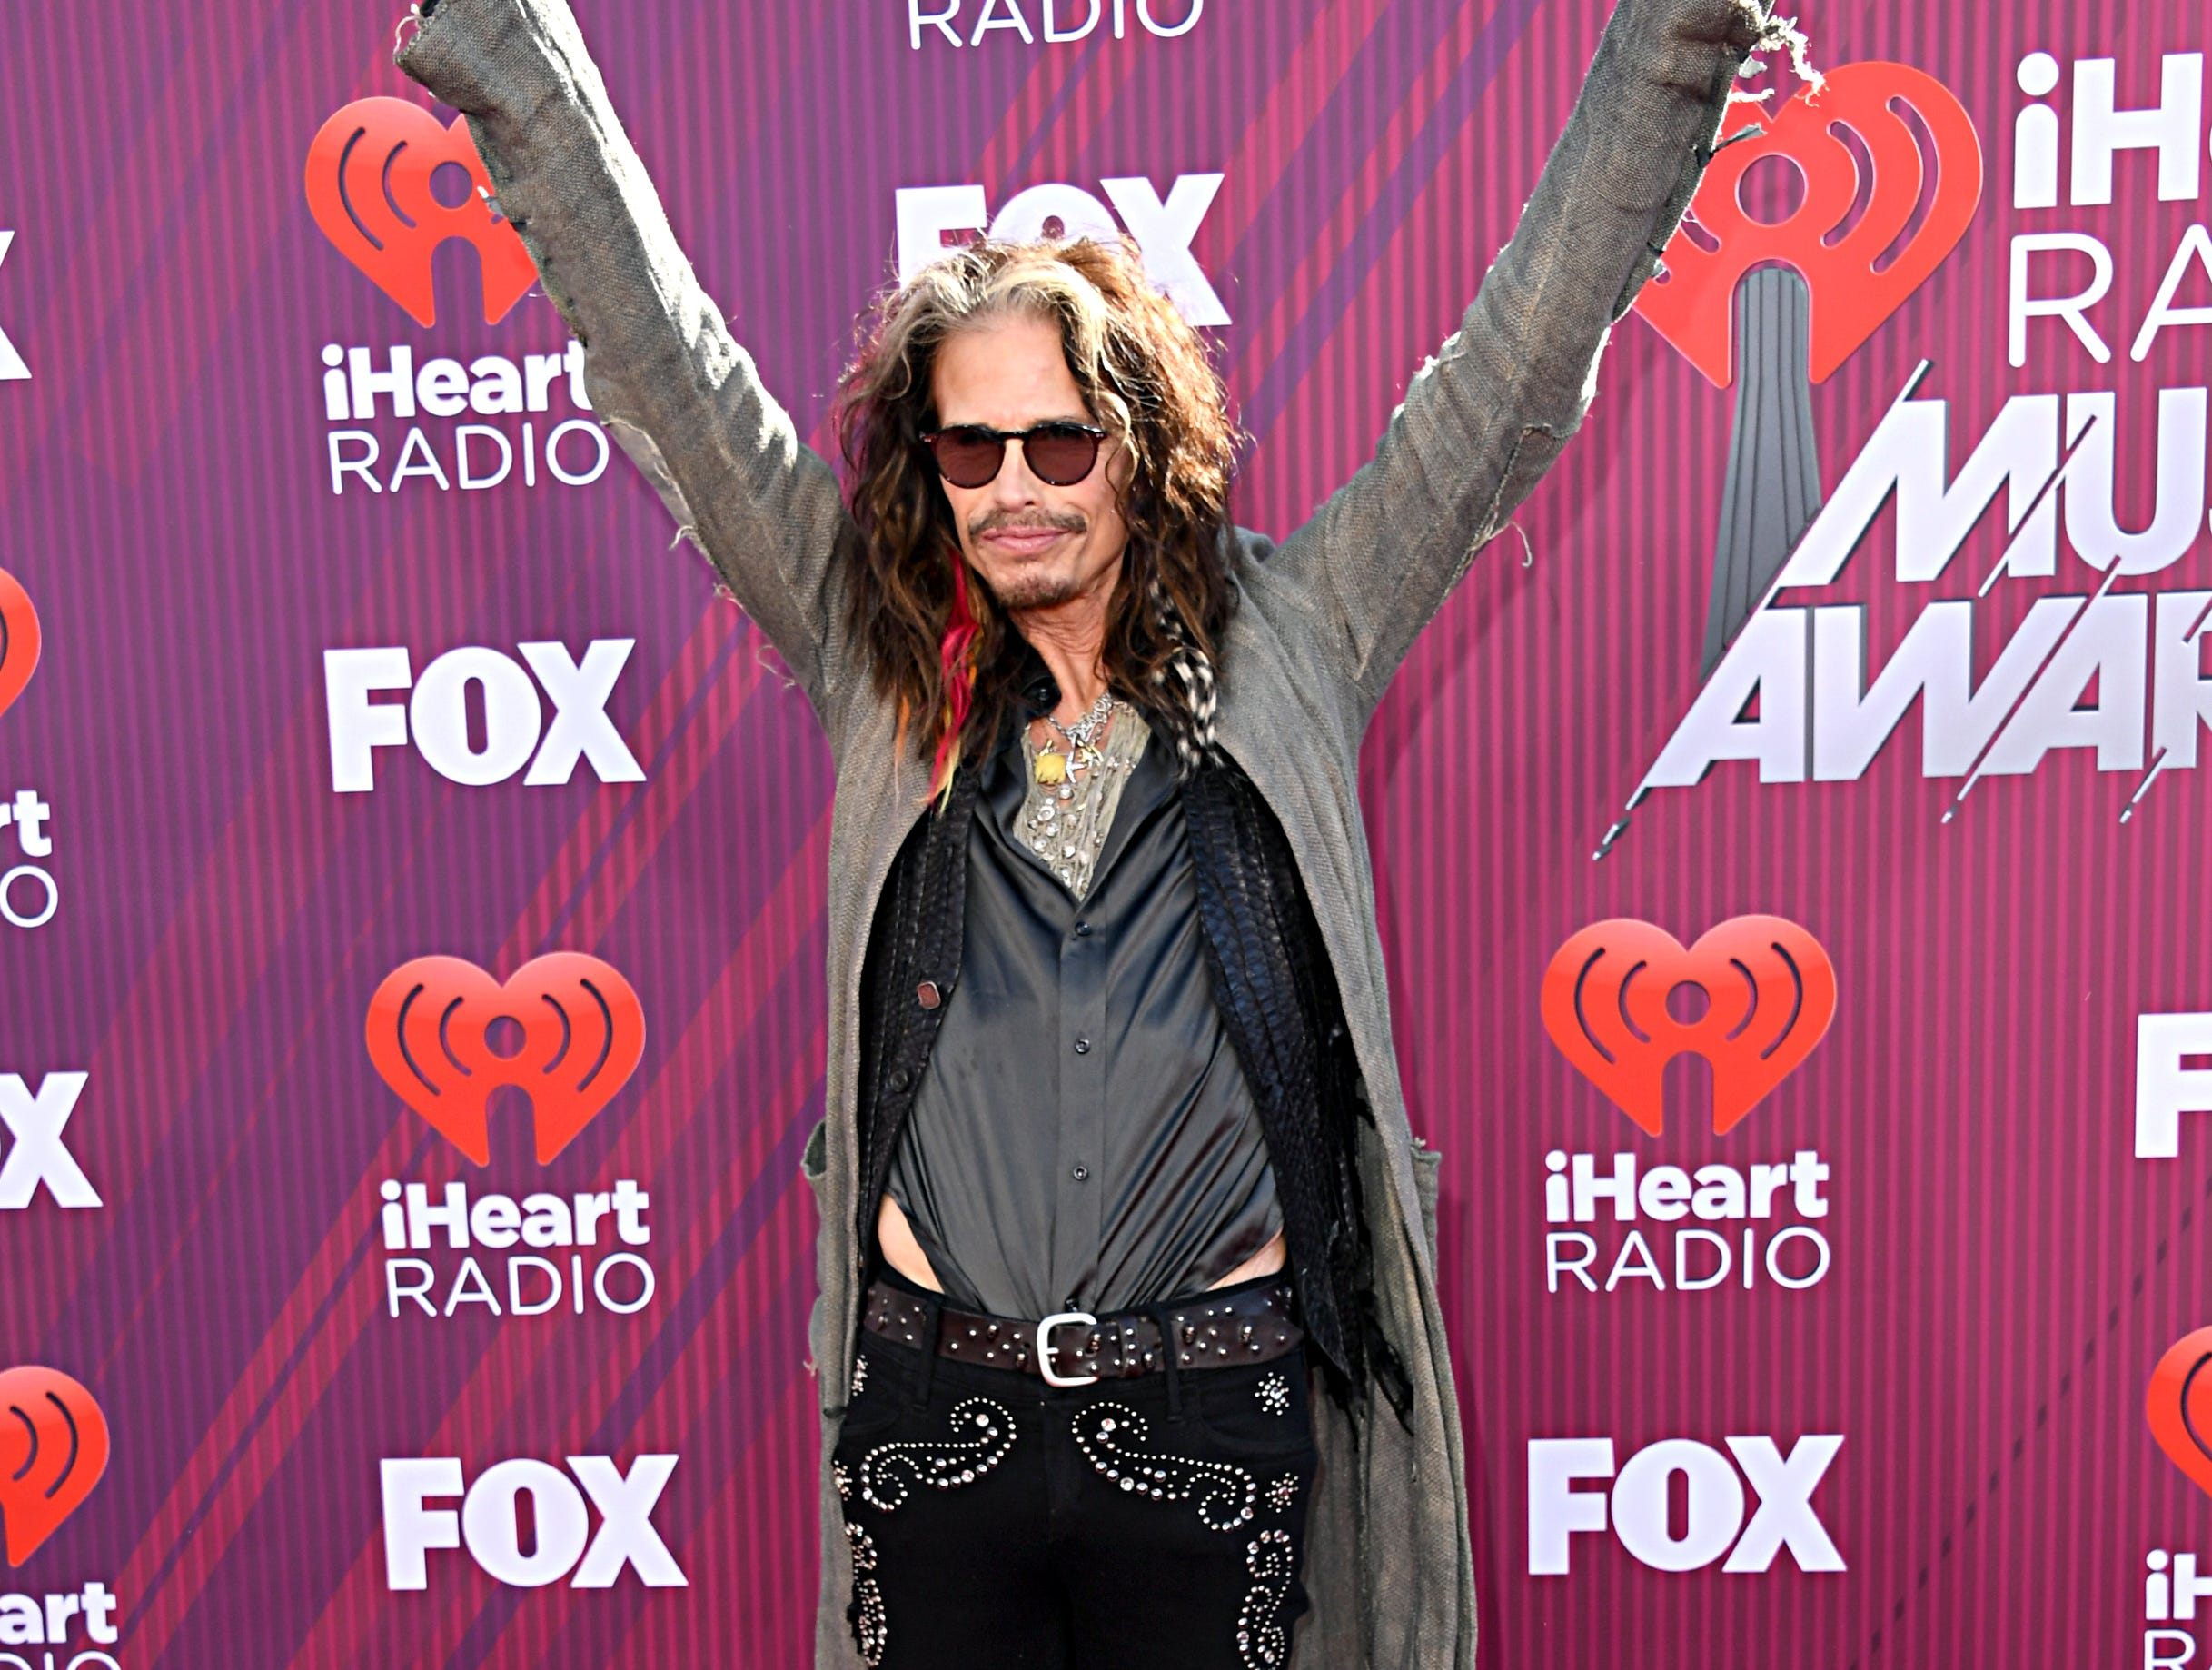 Steven Tyler arrives at the iHeartRadio Music Awards.